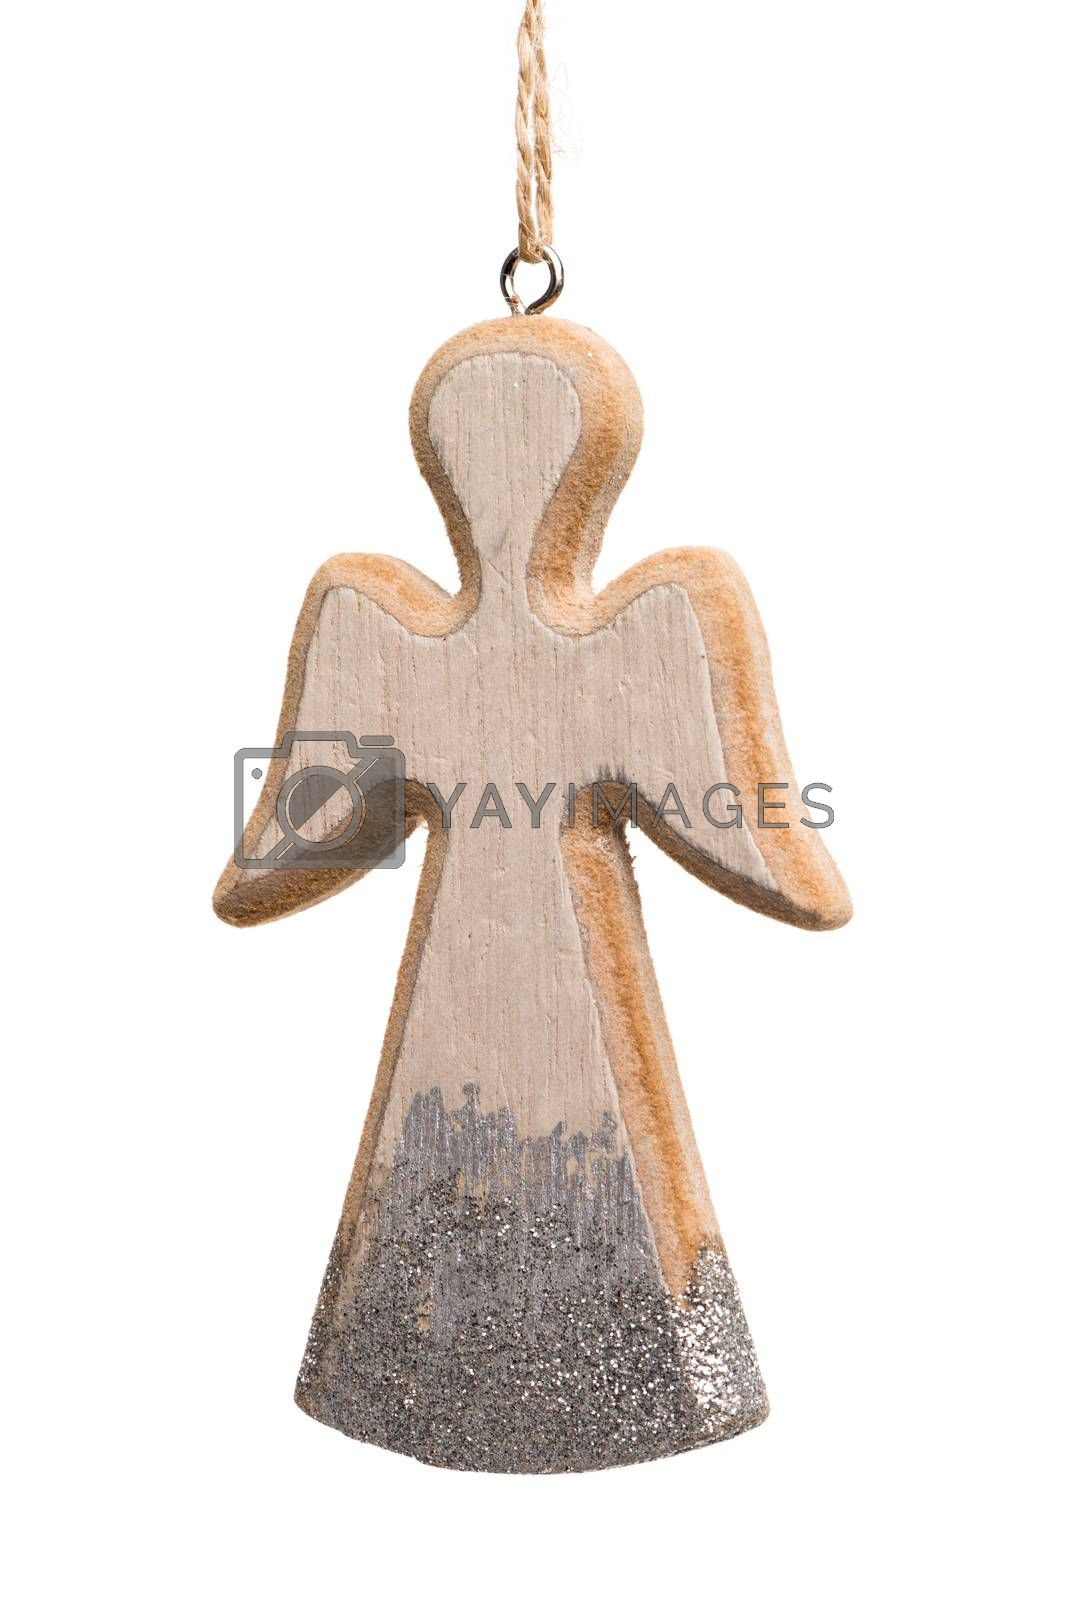 Christmas angel made of wood isolated on white background.